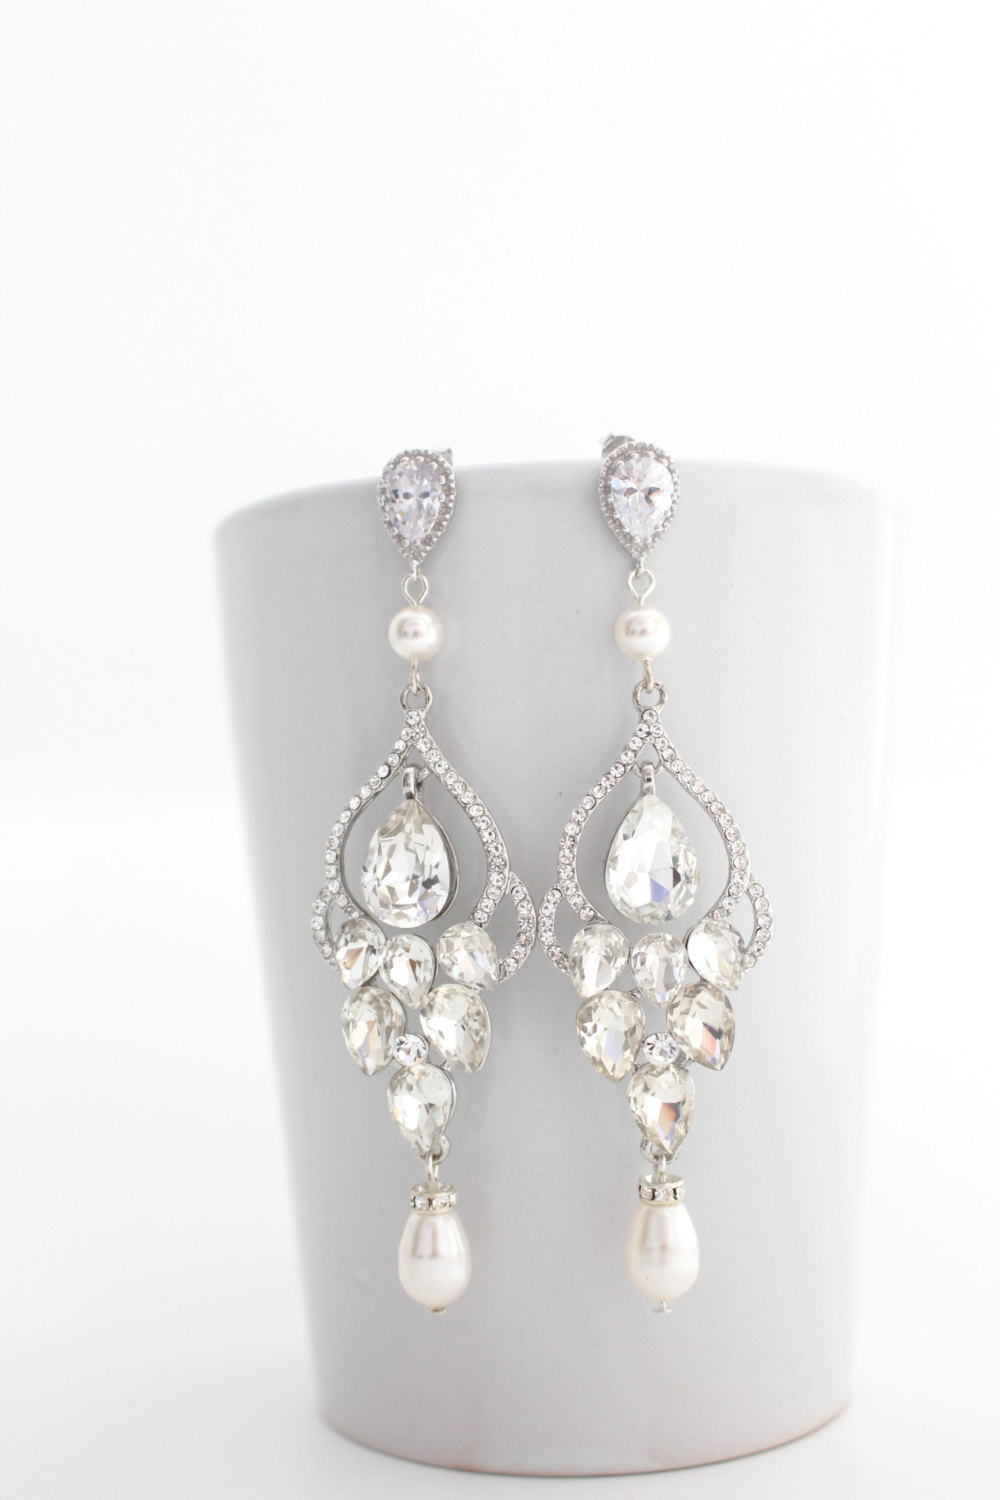 Chandelier Earrings - Statement Bridal Earrings